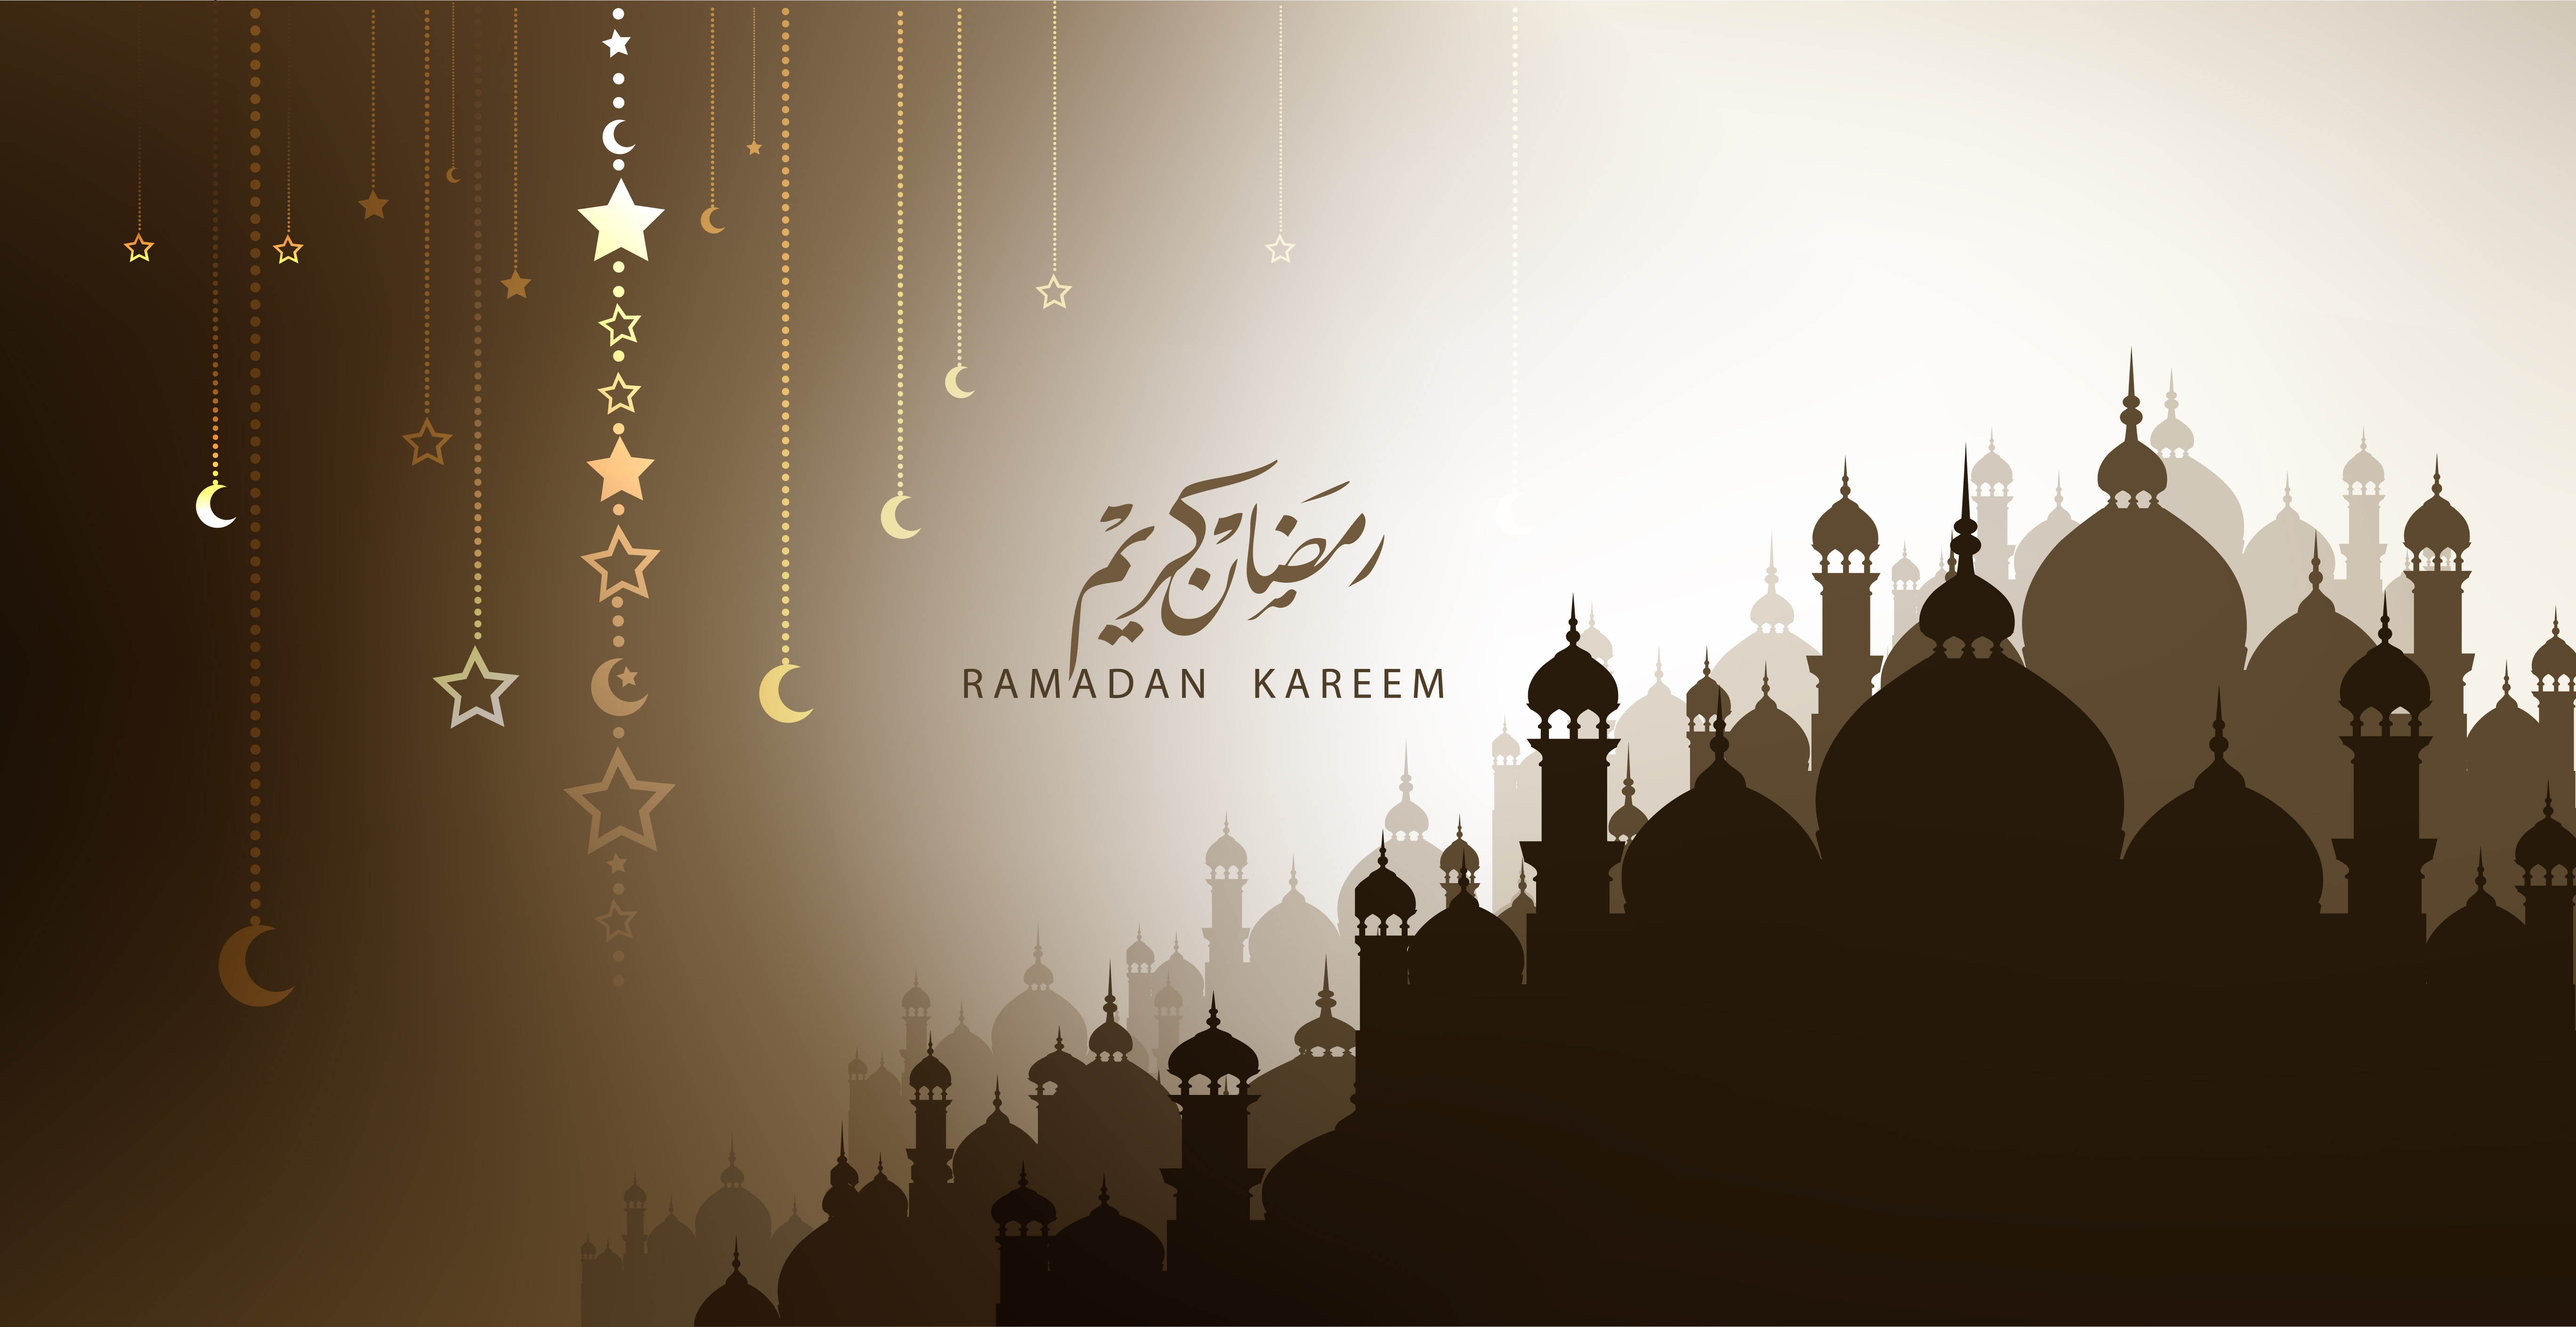 Ramadan 2016 Hd Wallpapers And Images For Free Download